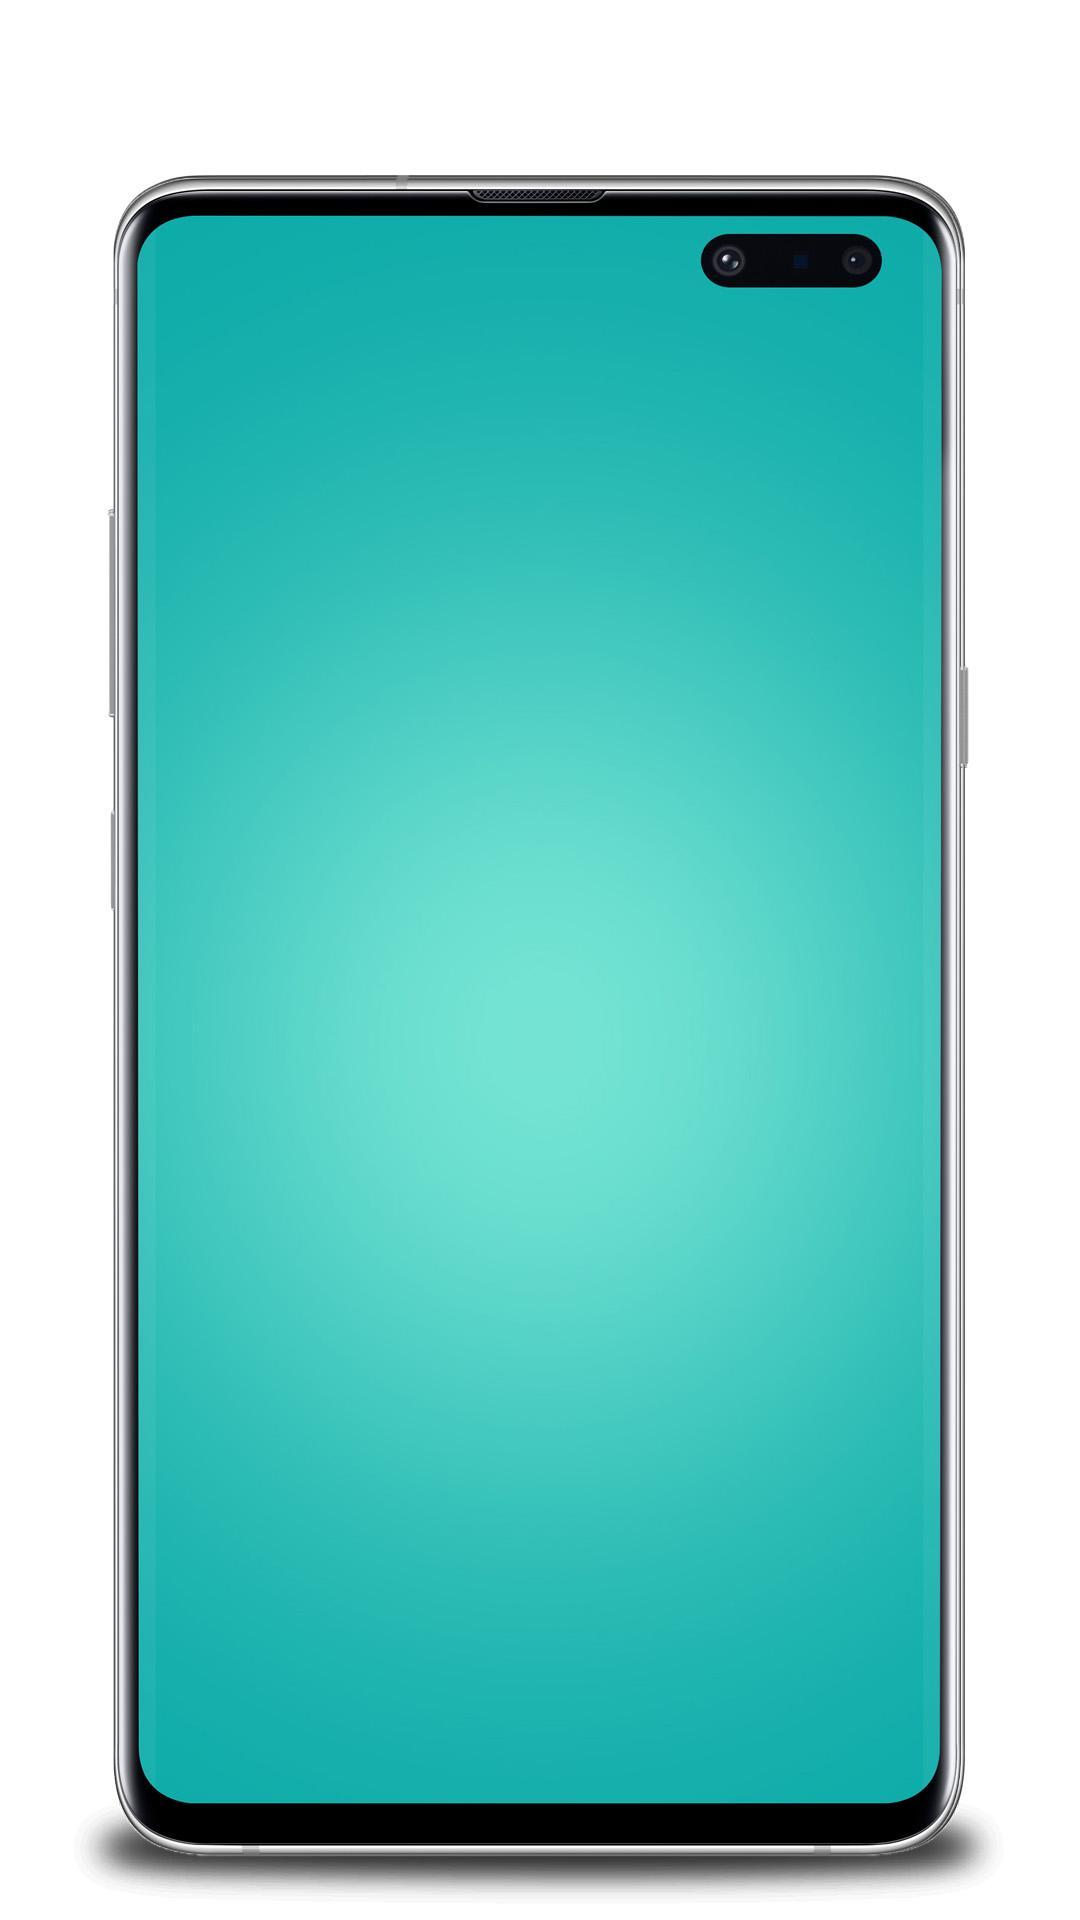 Solid Color Wallpaper For Android Apk Download